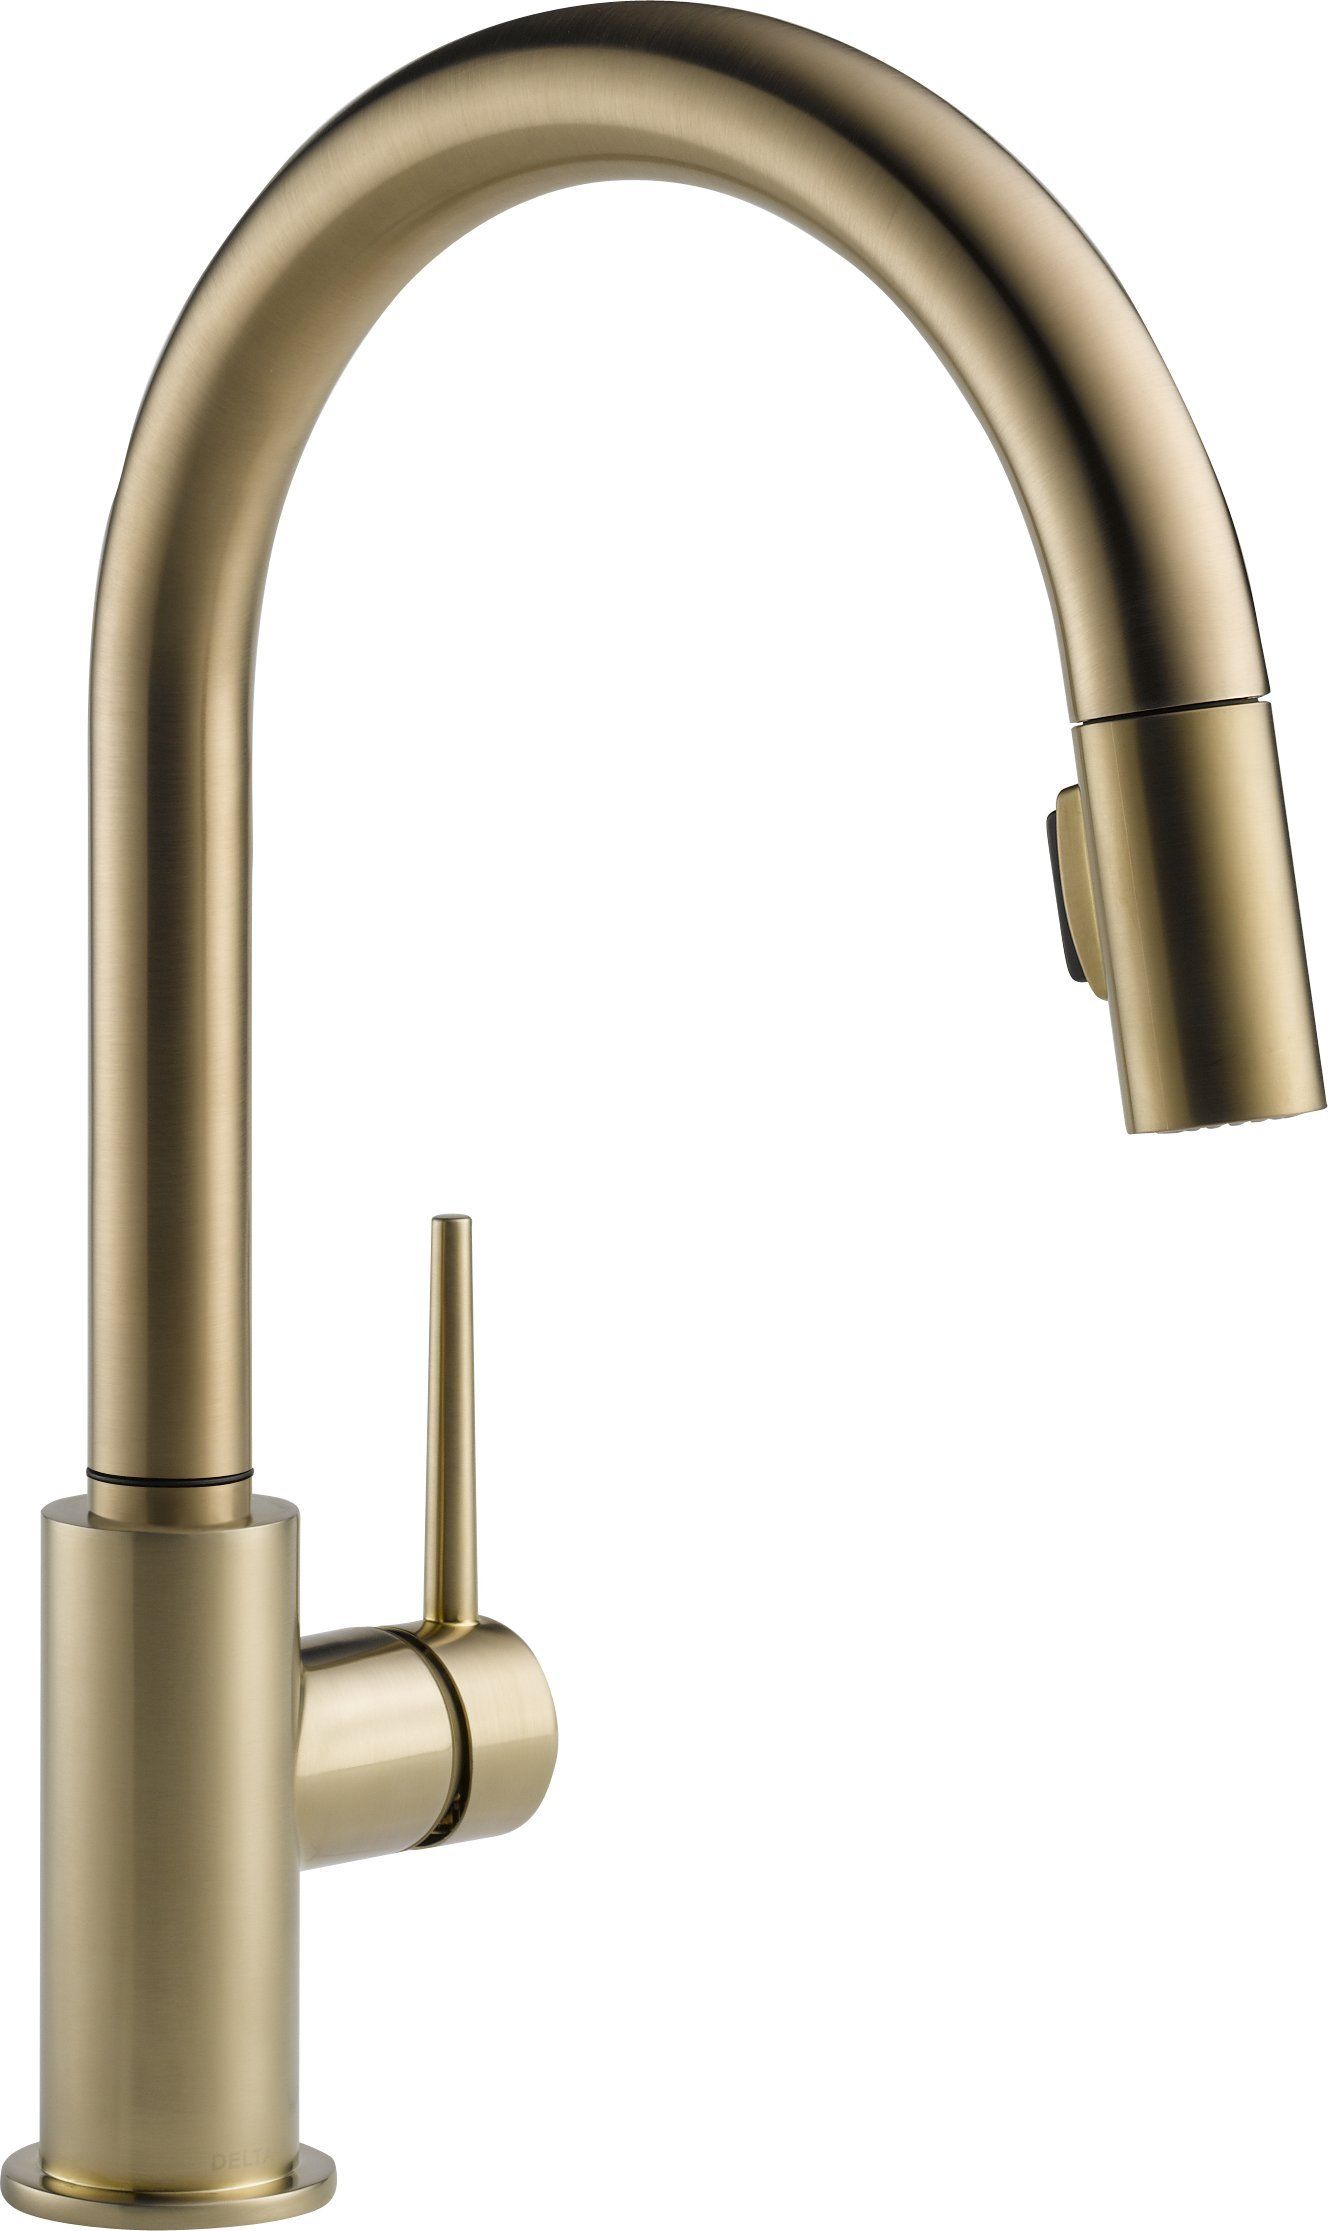 Delta Faucet Trinsic Single-Handle Kitchen Sink Faucet with Pull Down Sprayer and Magnetic Docking Spray Head, Champagne Bronze 9159-CZ-DST by DELTA FAUCET